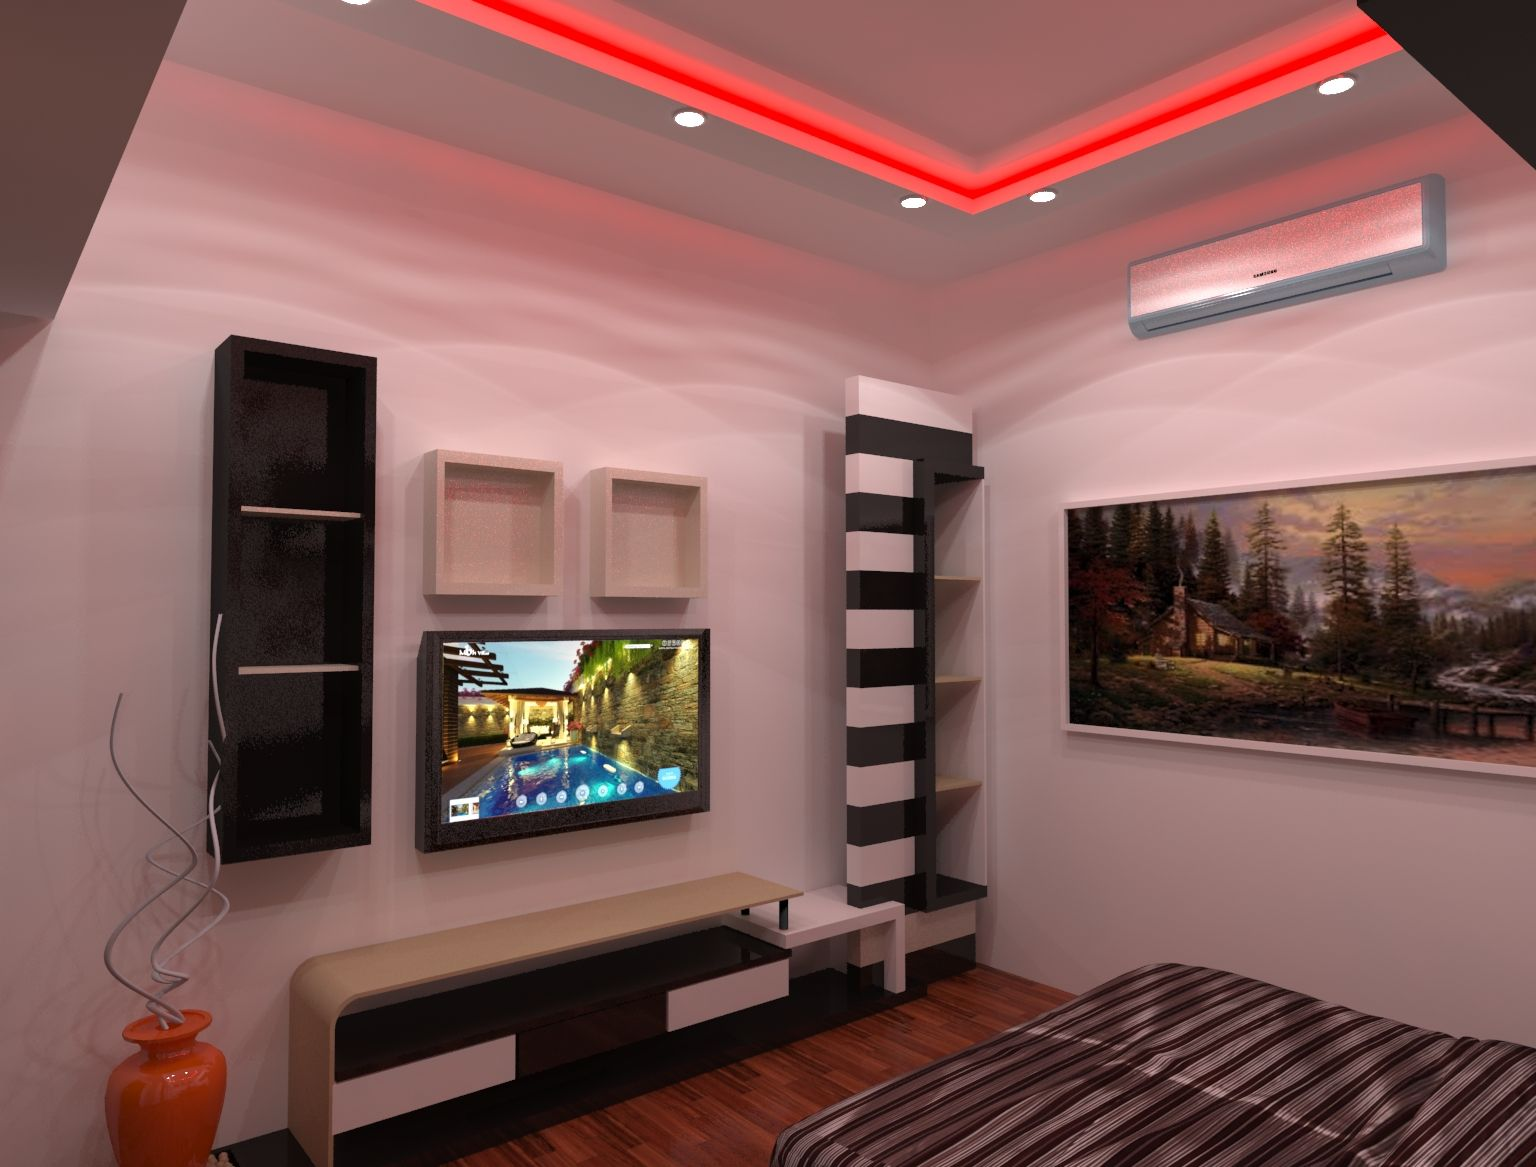 Home Interior Design Work Done In 3ds Max And V Ray With Images